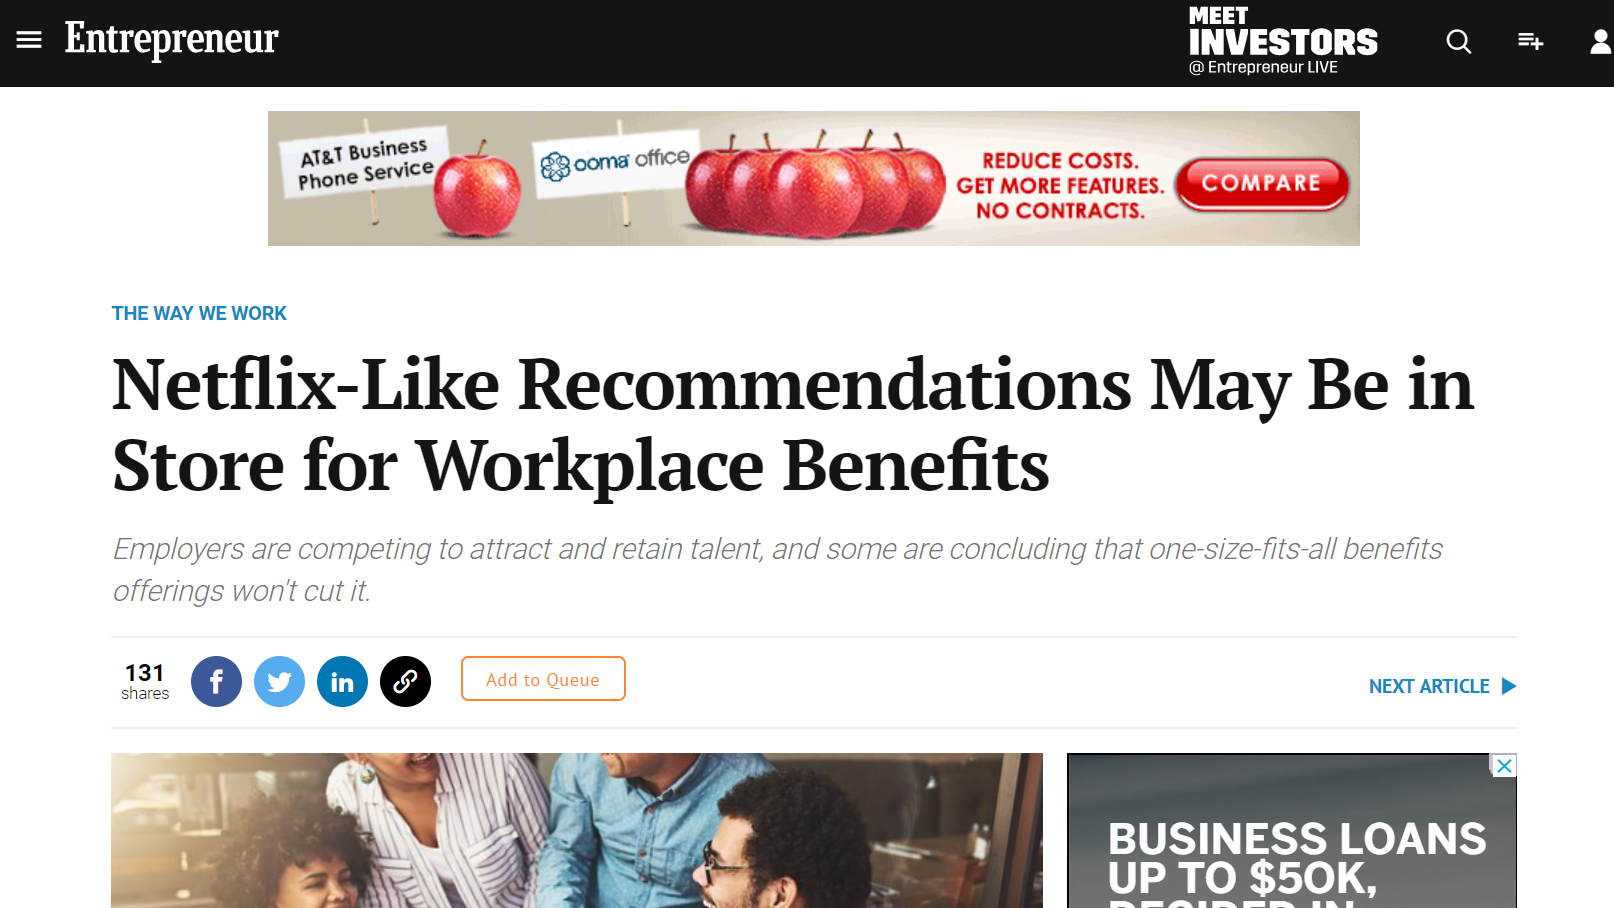 Netflix-Like Recommendations May Be in Store for Workplace Benefits